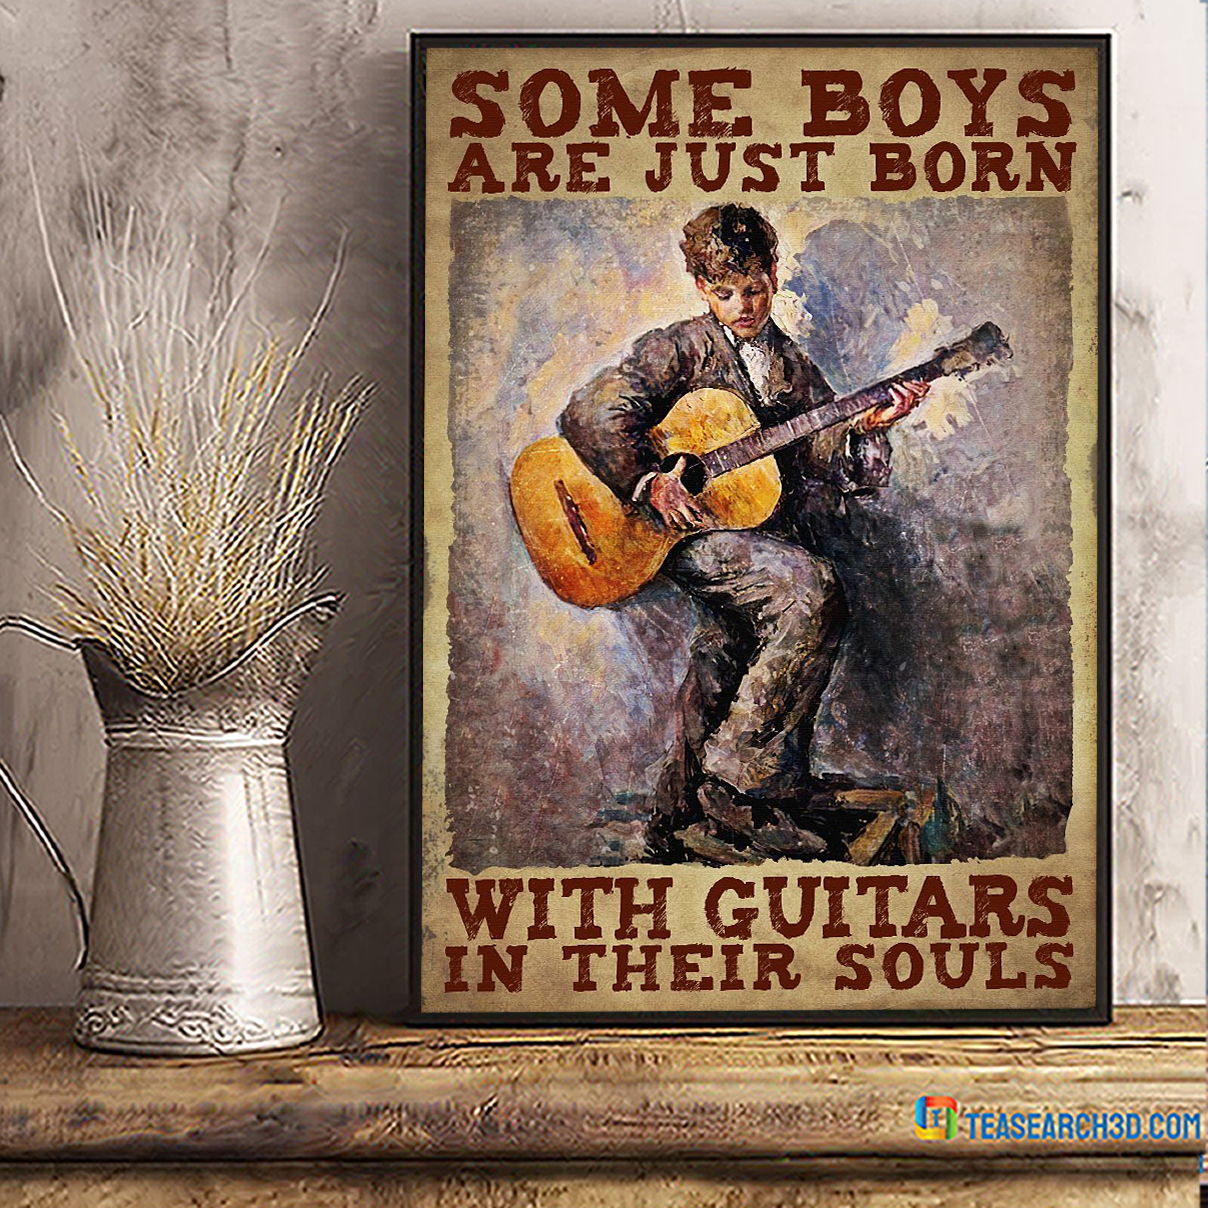 Some boys are just born with guitars in their souls poster A2